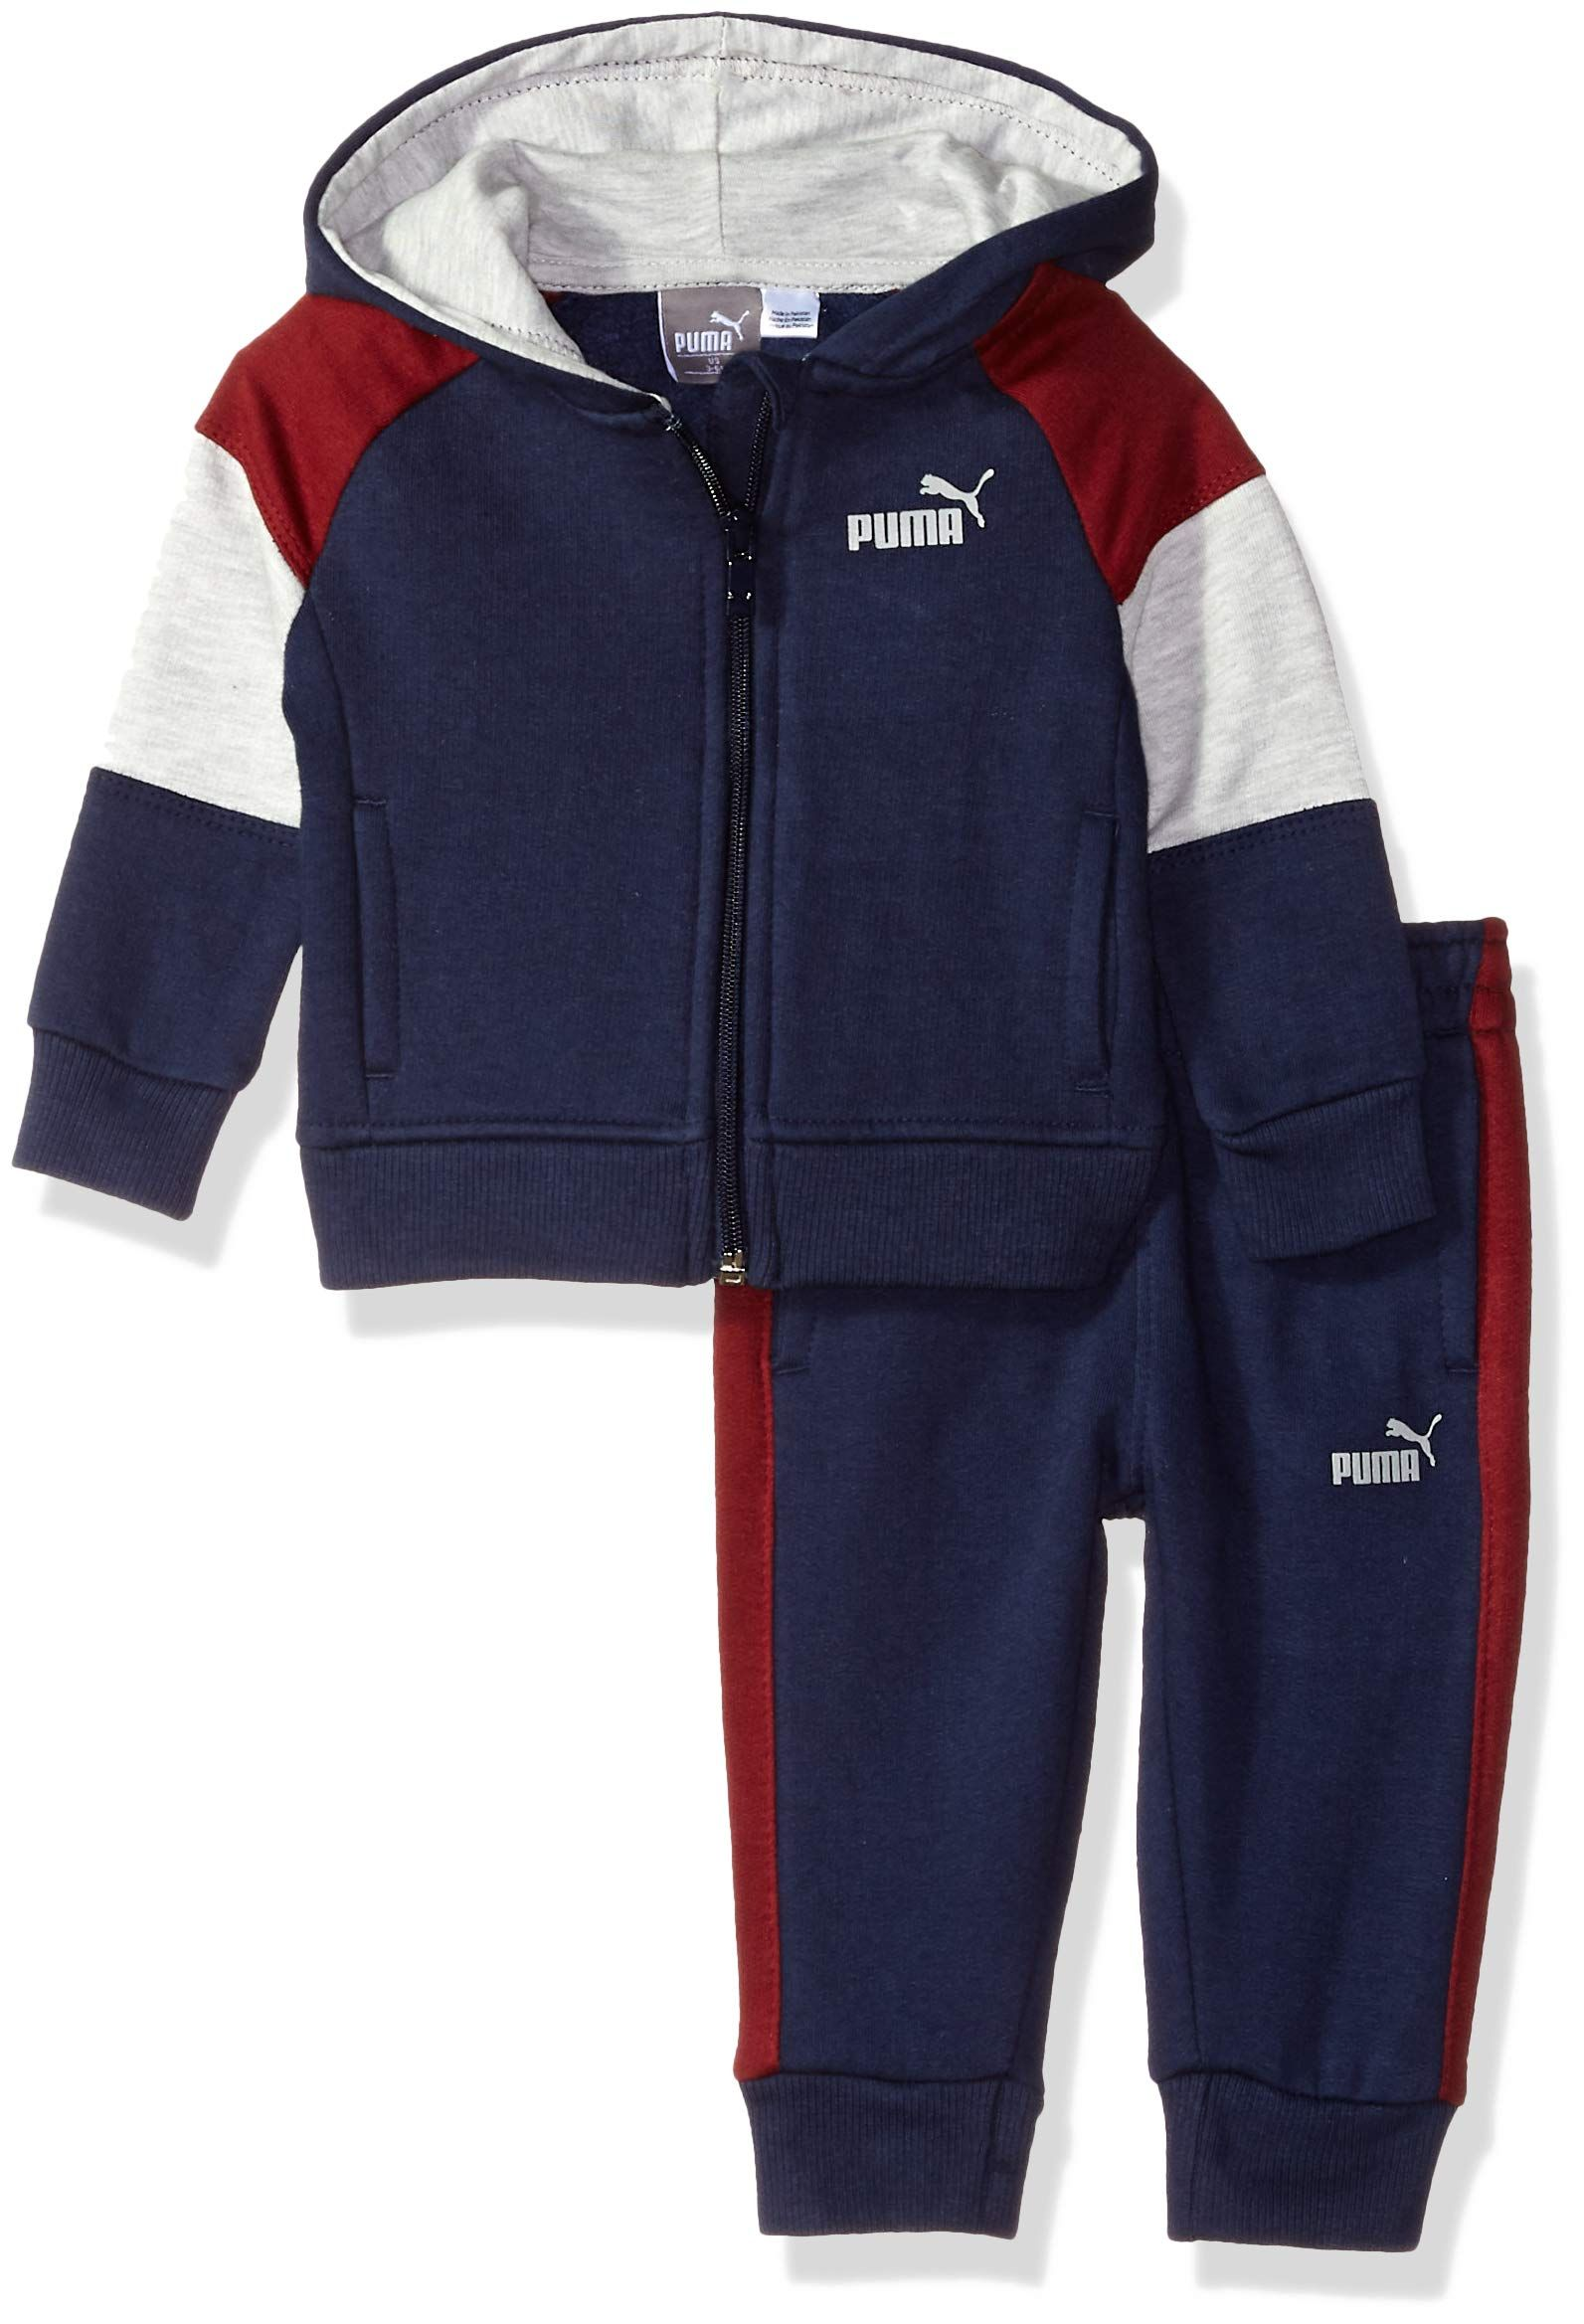 Puma Pullover Grün Look 69take At Baby Peacoat Fleece Set Hoodie Boys Zip Up A